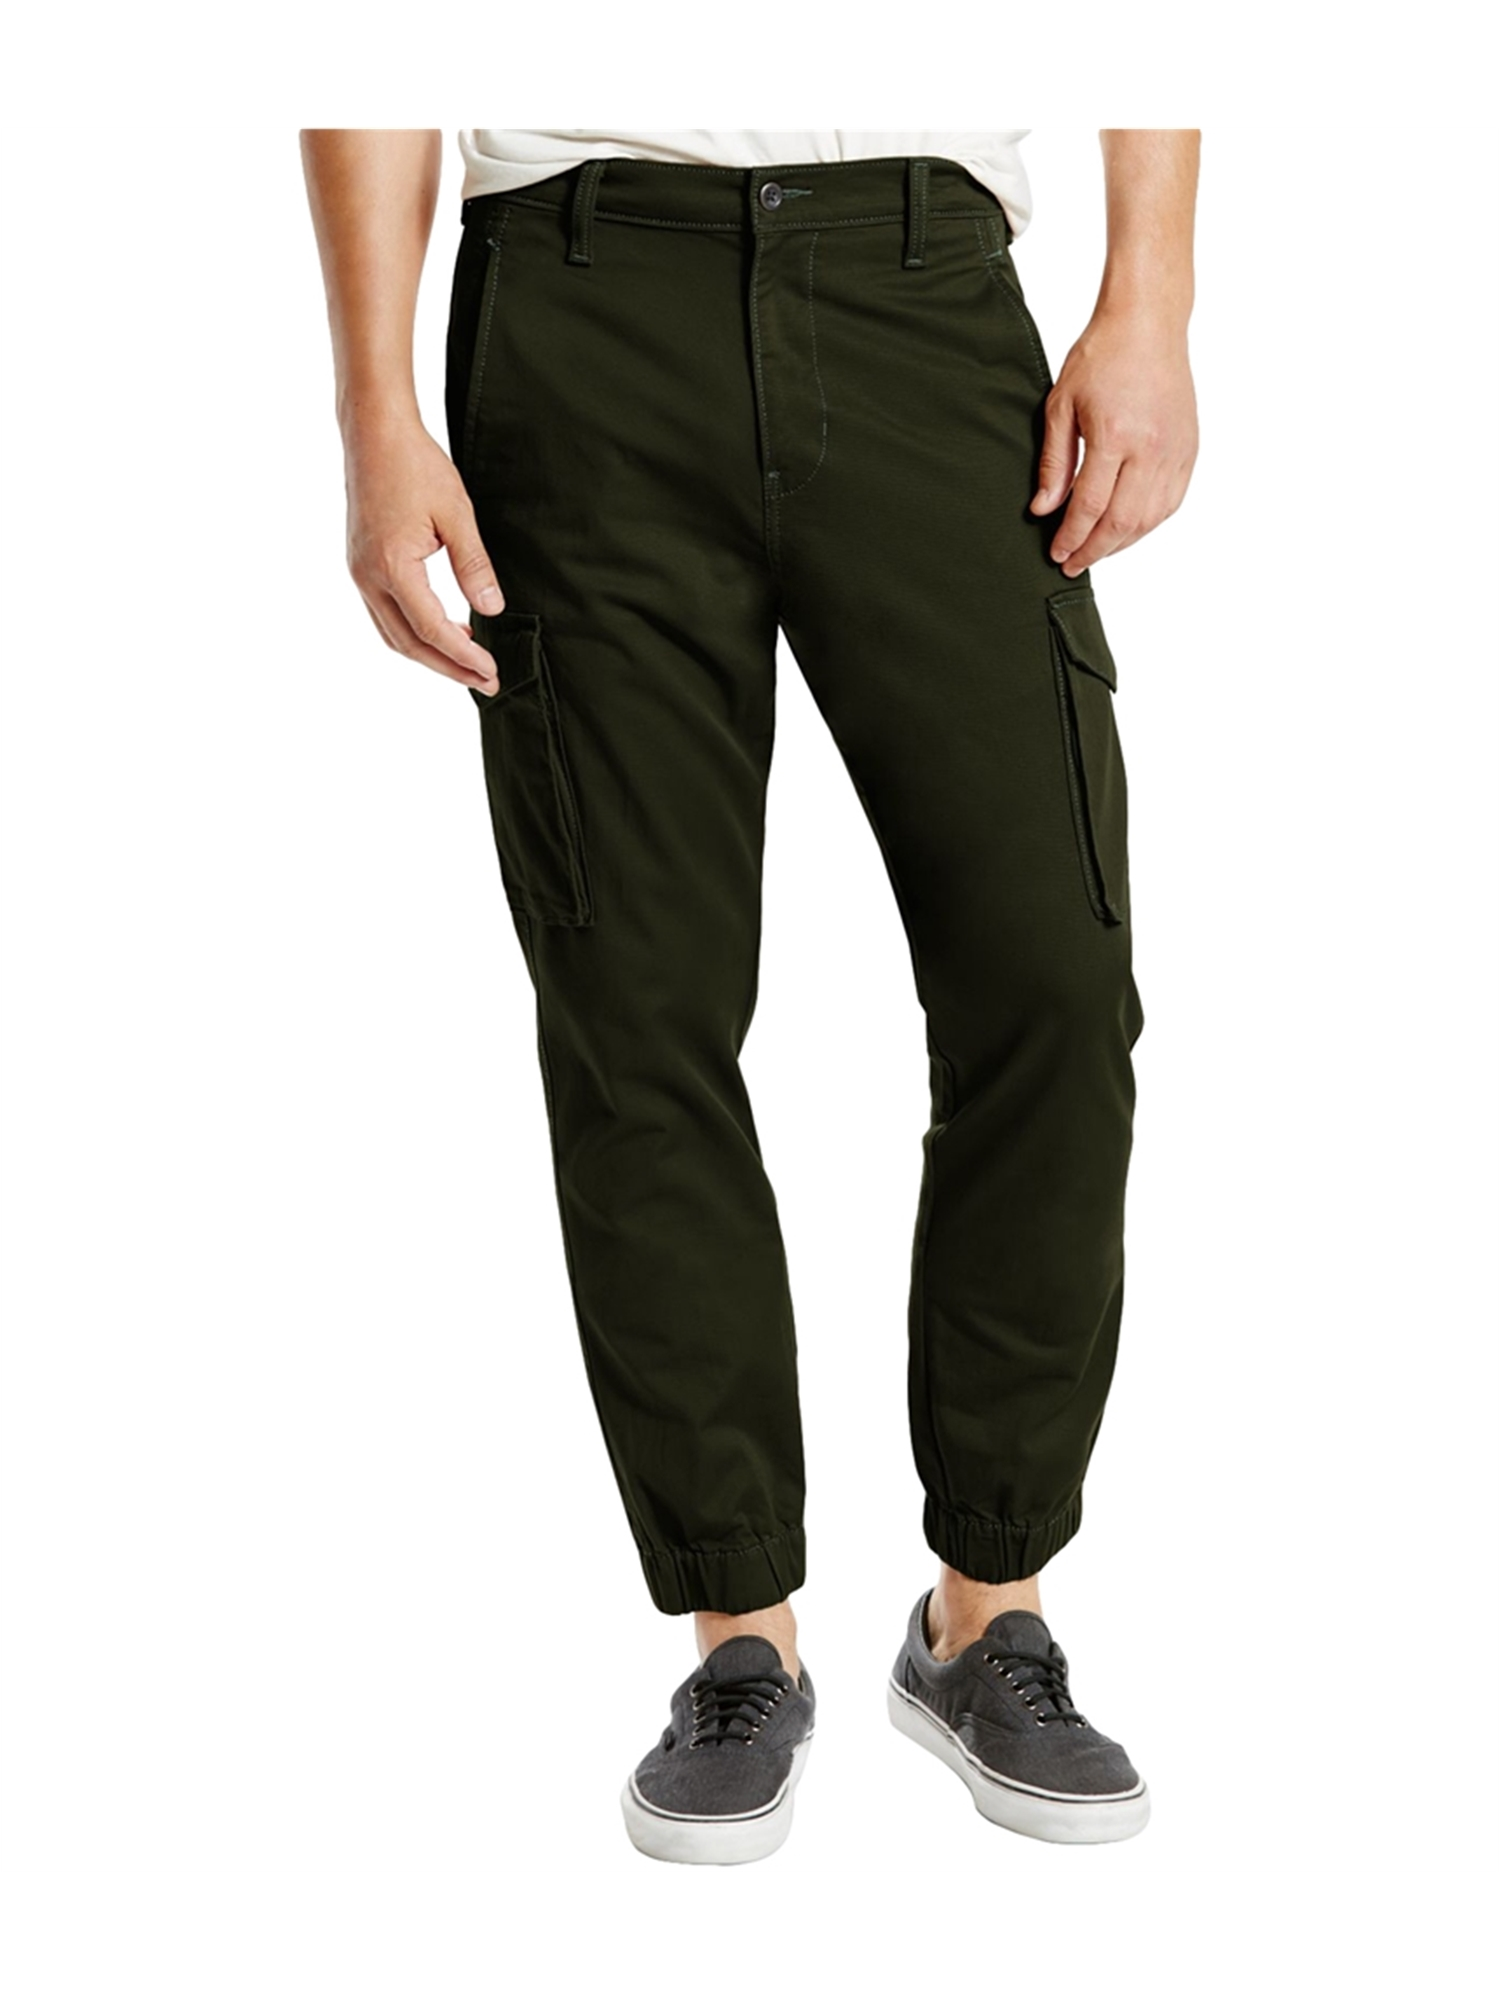 2ae76bfff8b5 Levi s Mens Slim Banded Cargo Casual Jogger Pants rosintwill 32x32